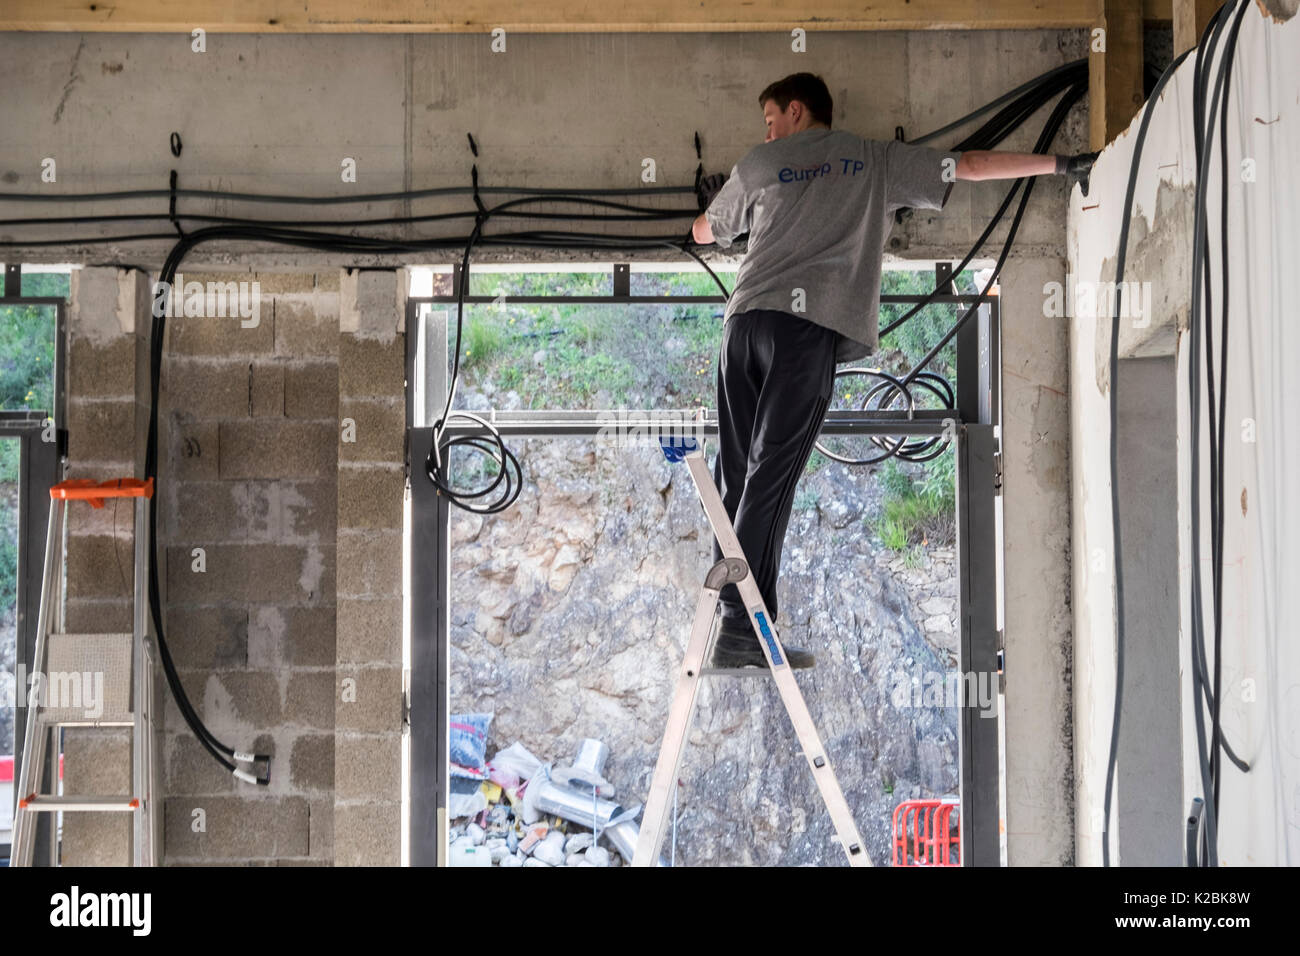 Electrician on a ladder works to install electrical cables in a new home under construction in the south of France - Stock Image